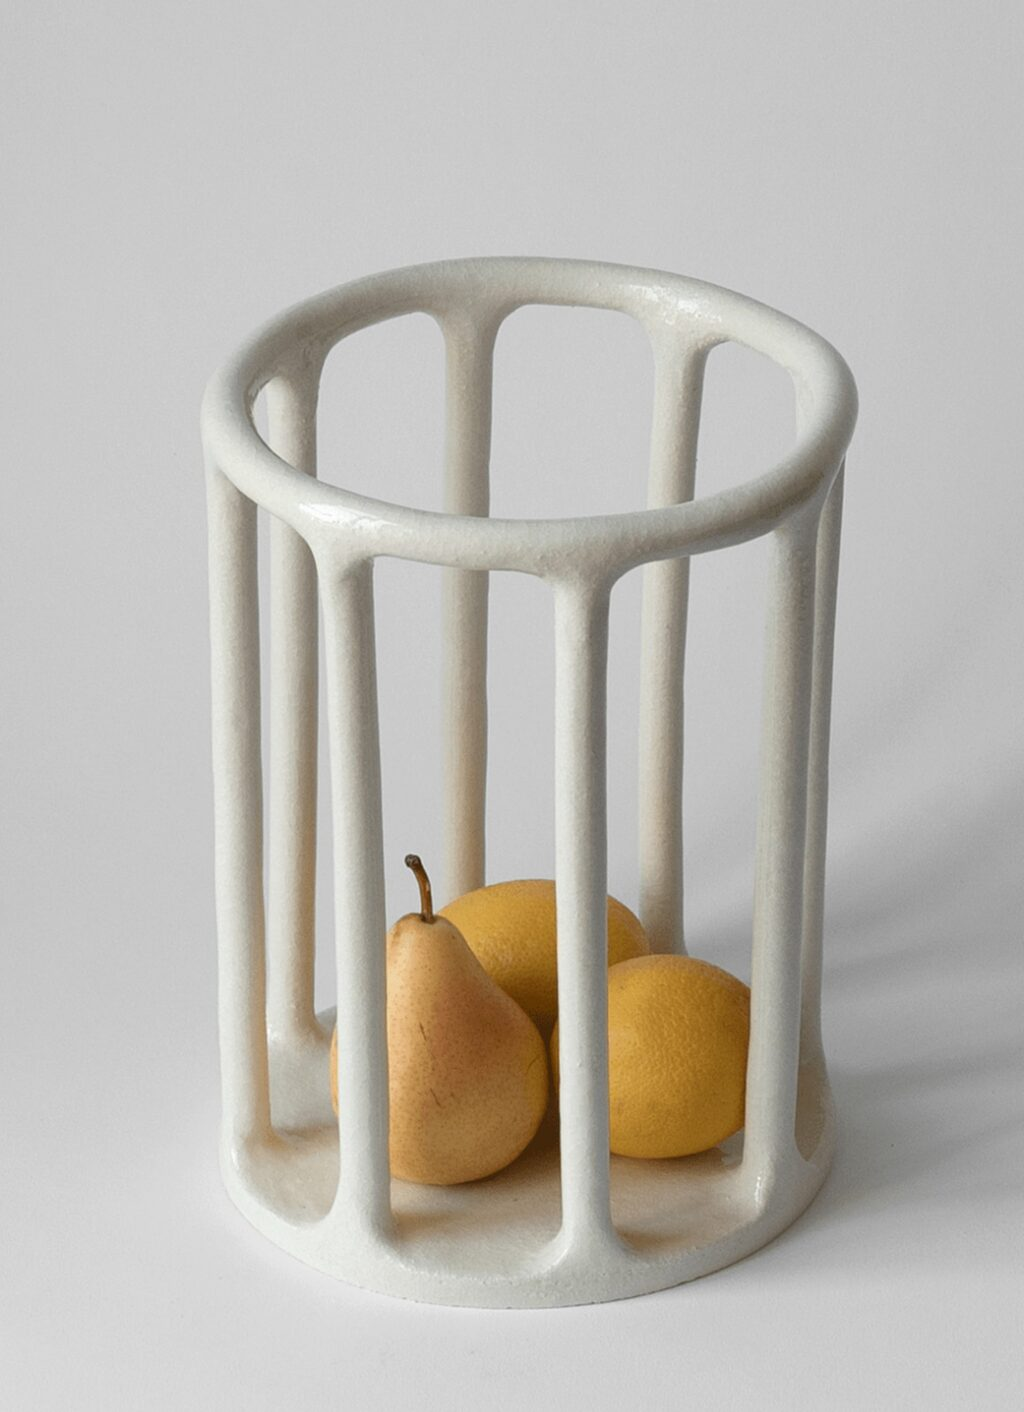 Solenne Belloir- Minimalist Cylindrical Basket - Glazed Stoneware - White